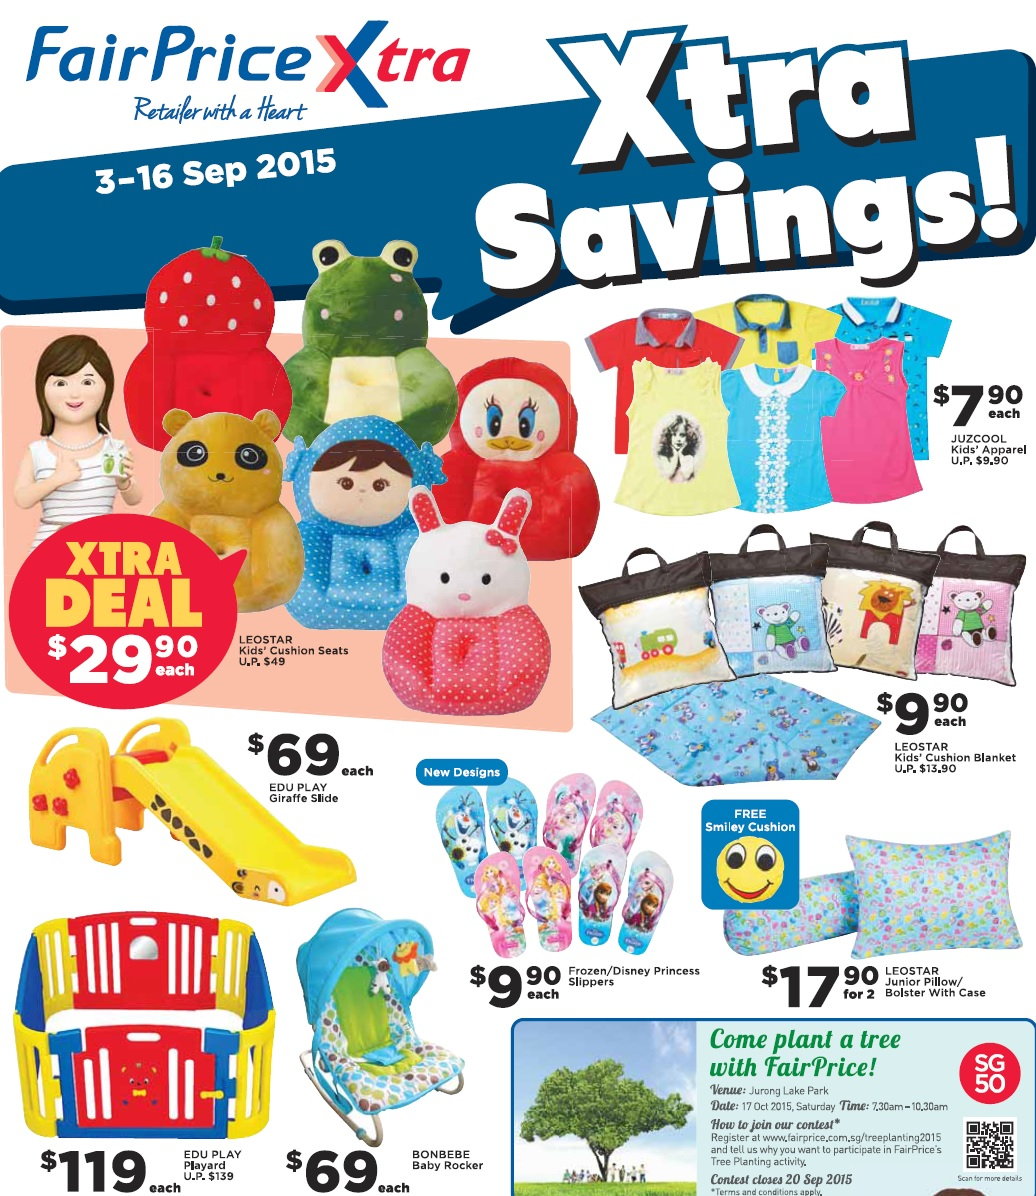 新加坡玩具促销-Baby toys promotion in Singapore,toy car, toy ball, soft toy, building blocks promotion in Singapore